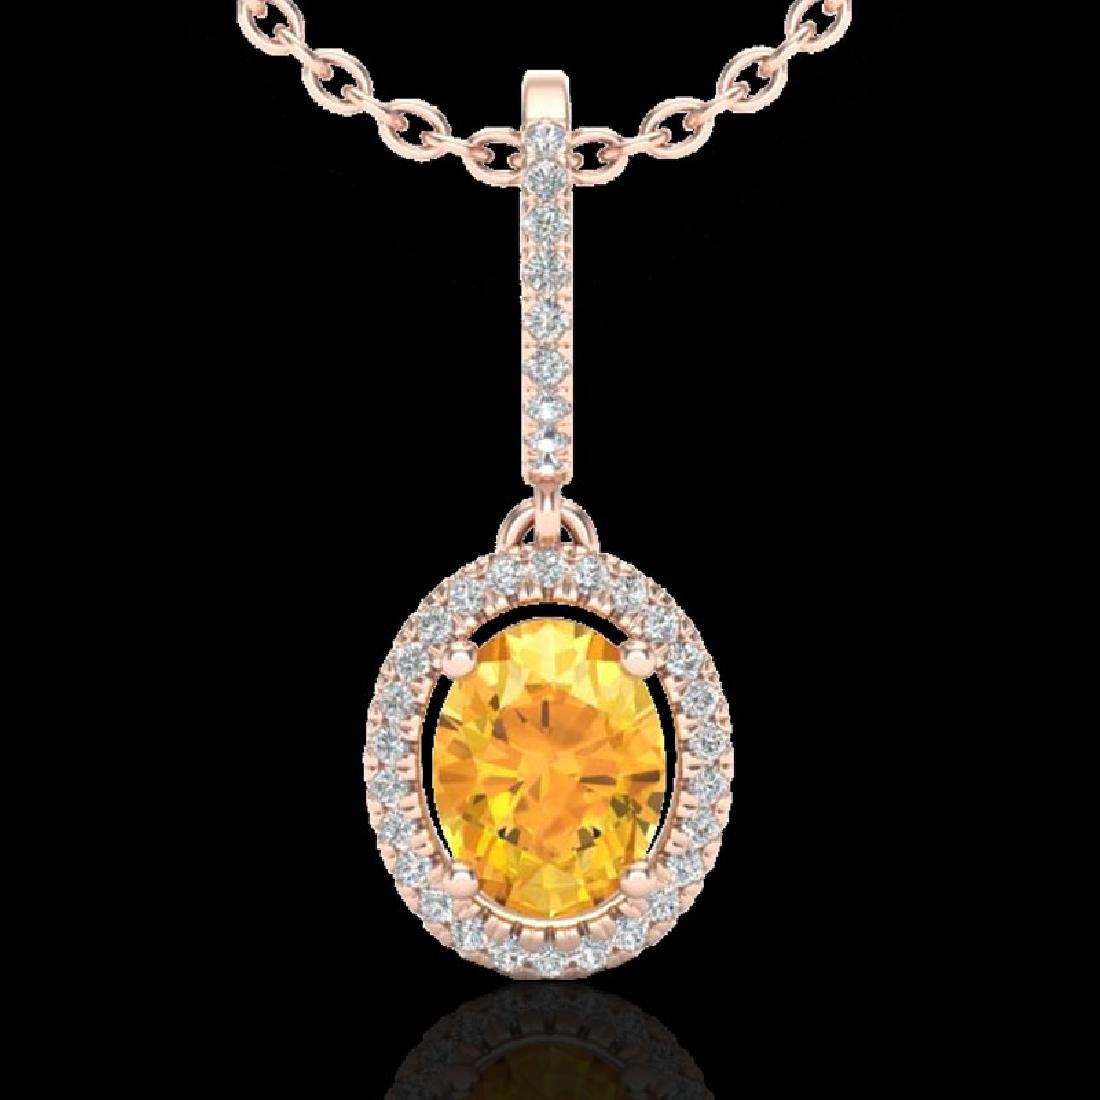 1.75 CTW Citrine & Micro Pave VS/SI Diamond Necklace